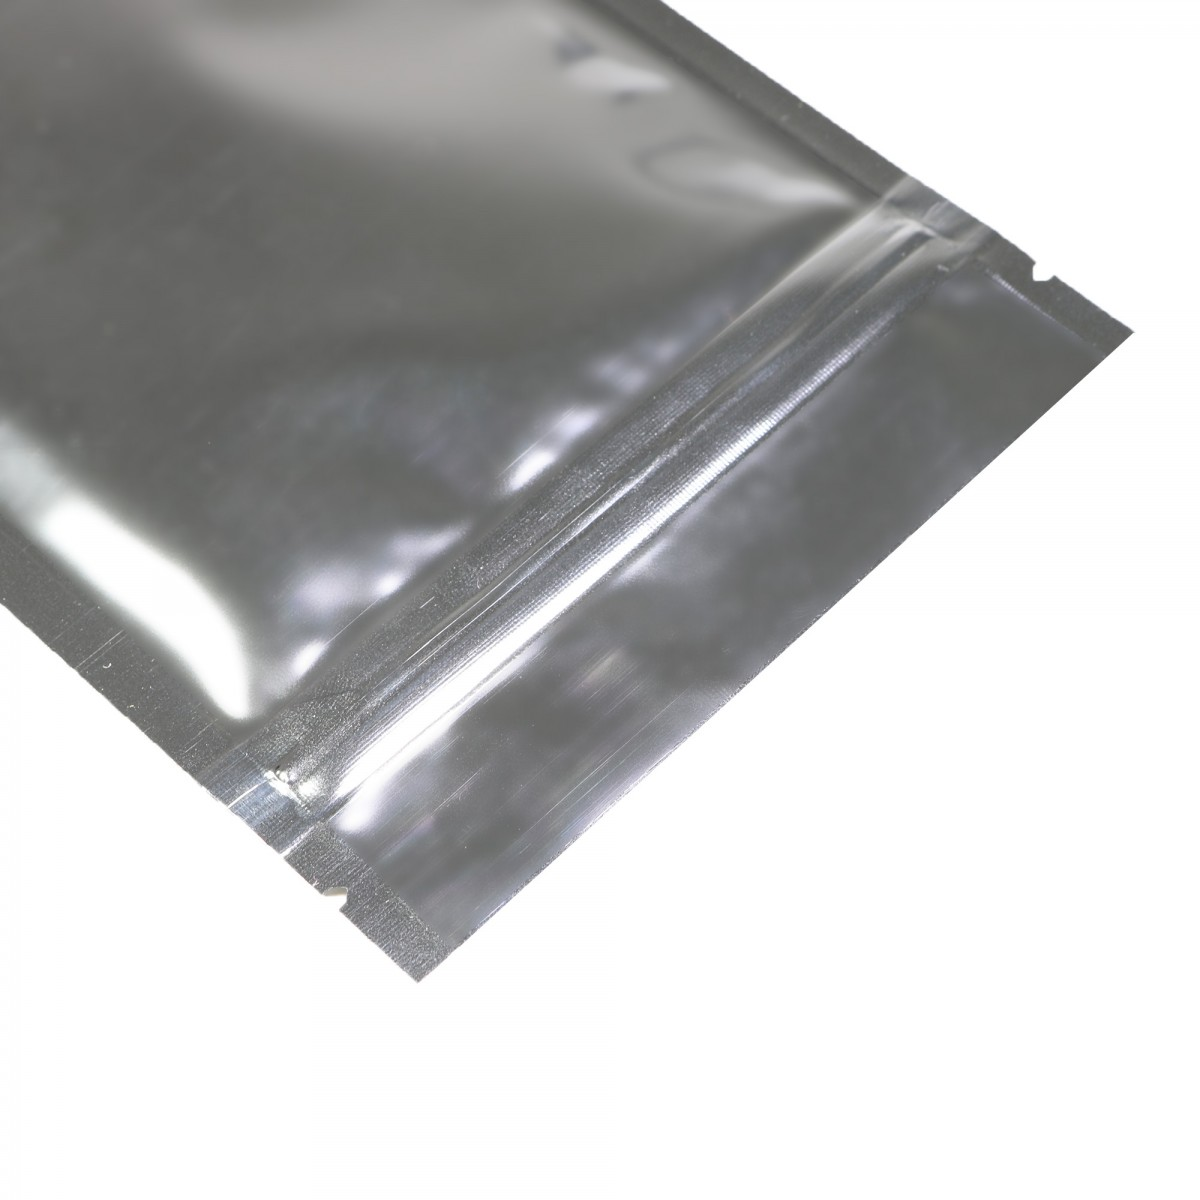 silver shiny metallic mylar ziplock bags 6 cm x 9 cm 2 4 inches x 3 5 inches 500 bags lot. Black Bedroom Furniture Sets. Home Design Ideas